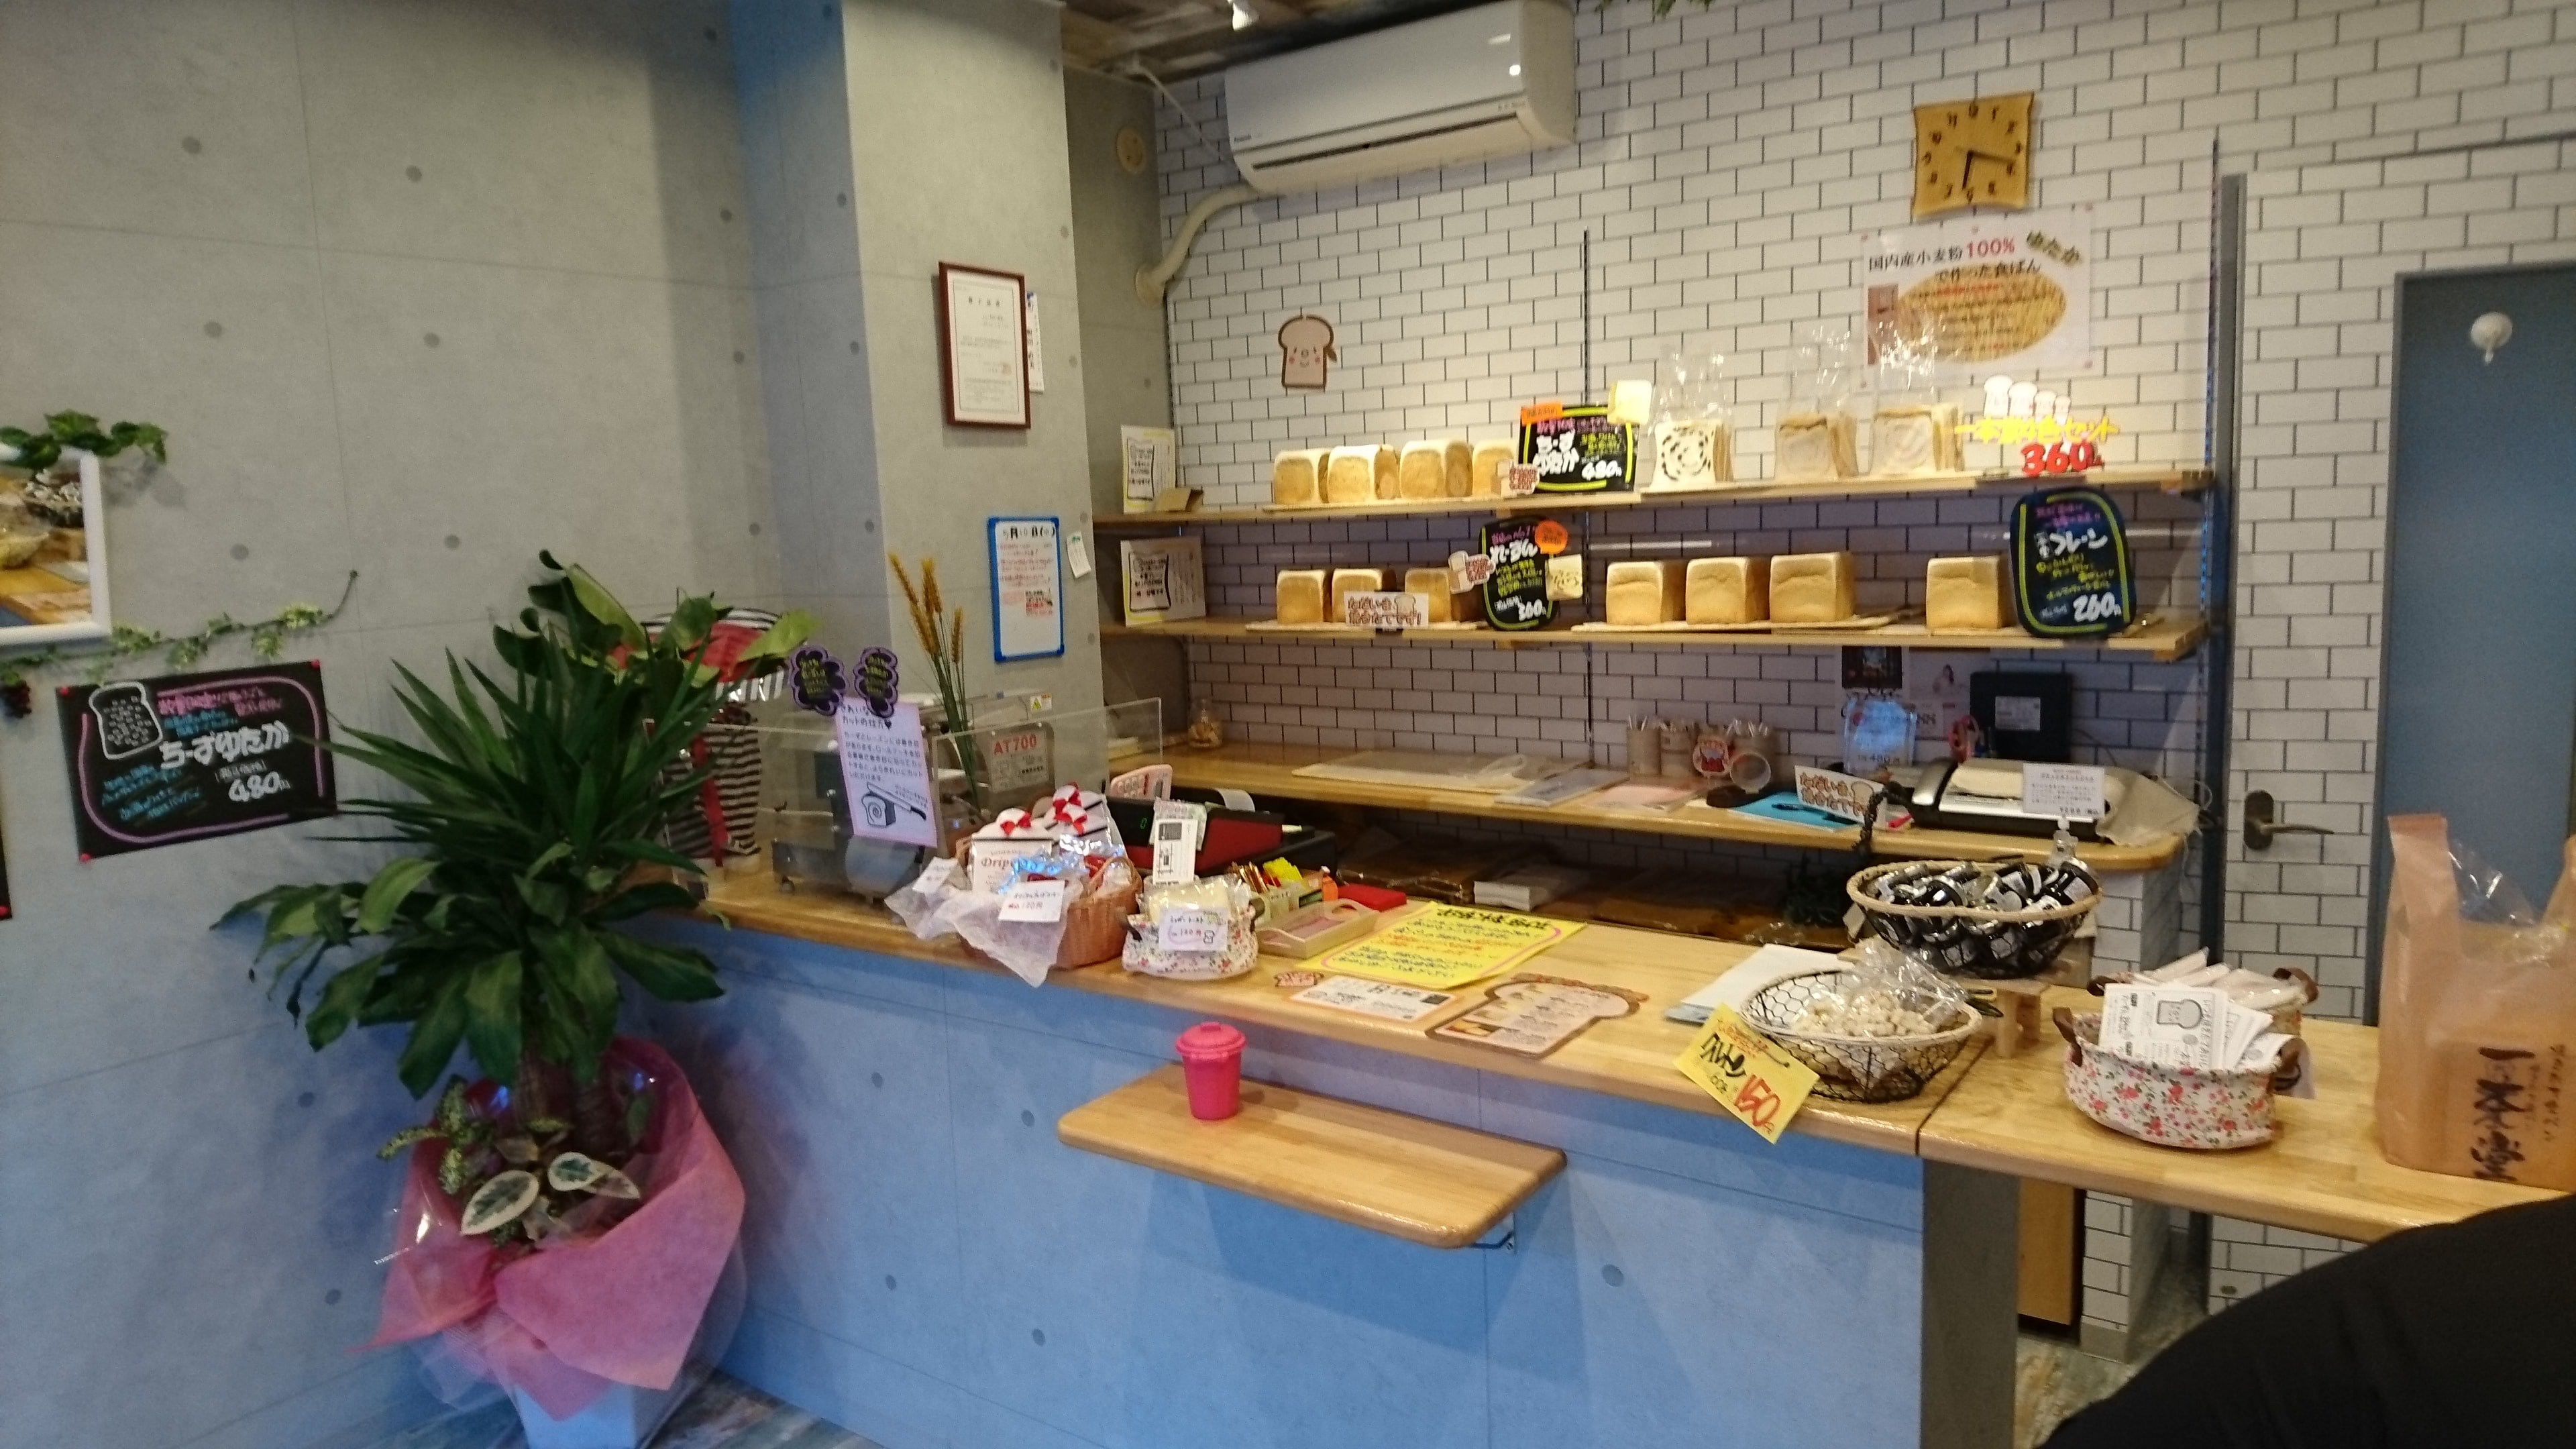 antique-miscellaneous-goods-cafe01